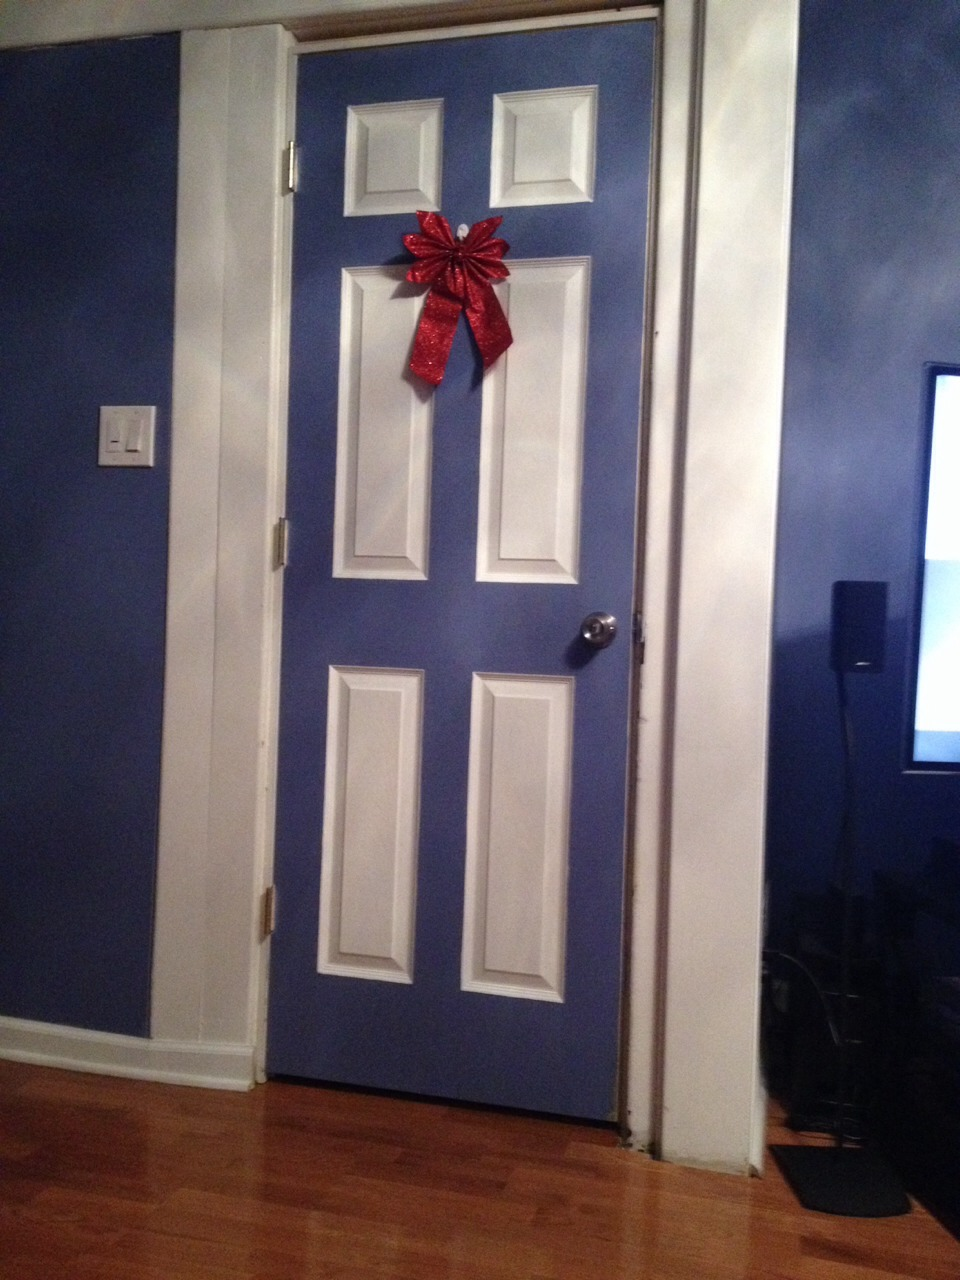 Paint your door with the wall color or a different color for a pop of color